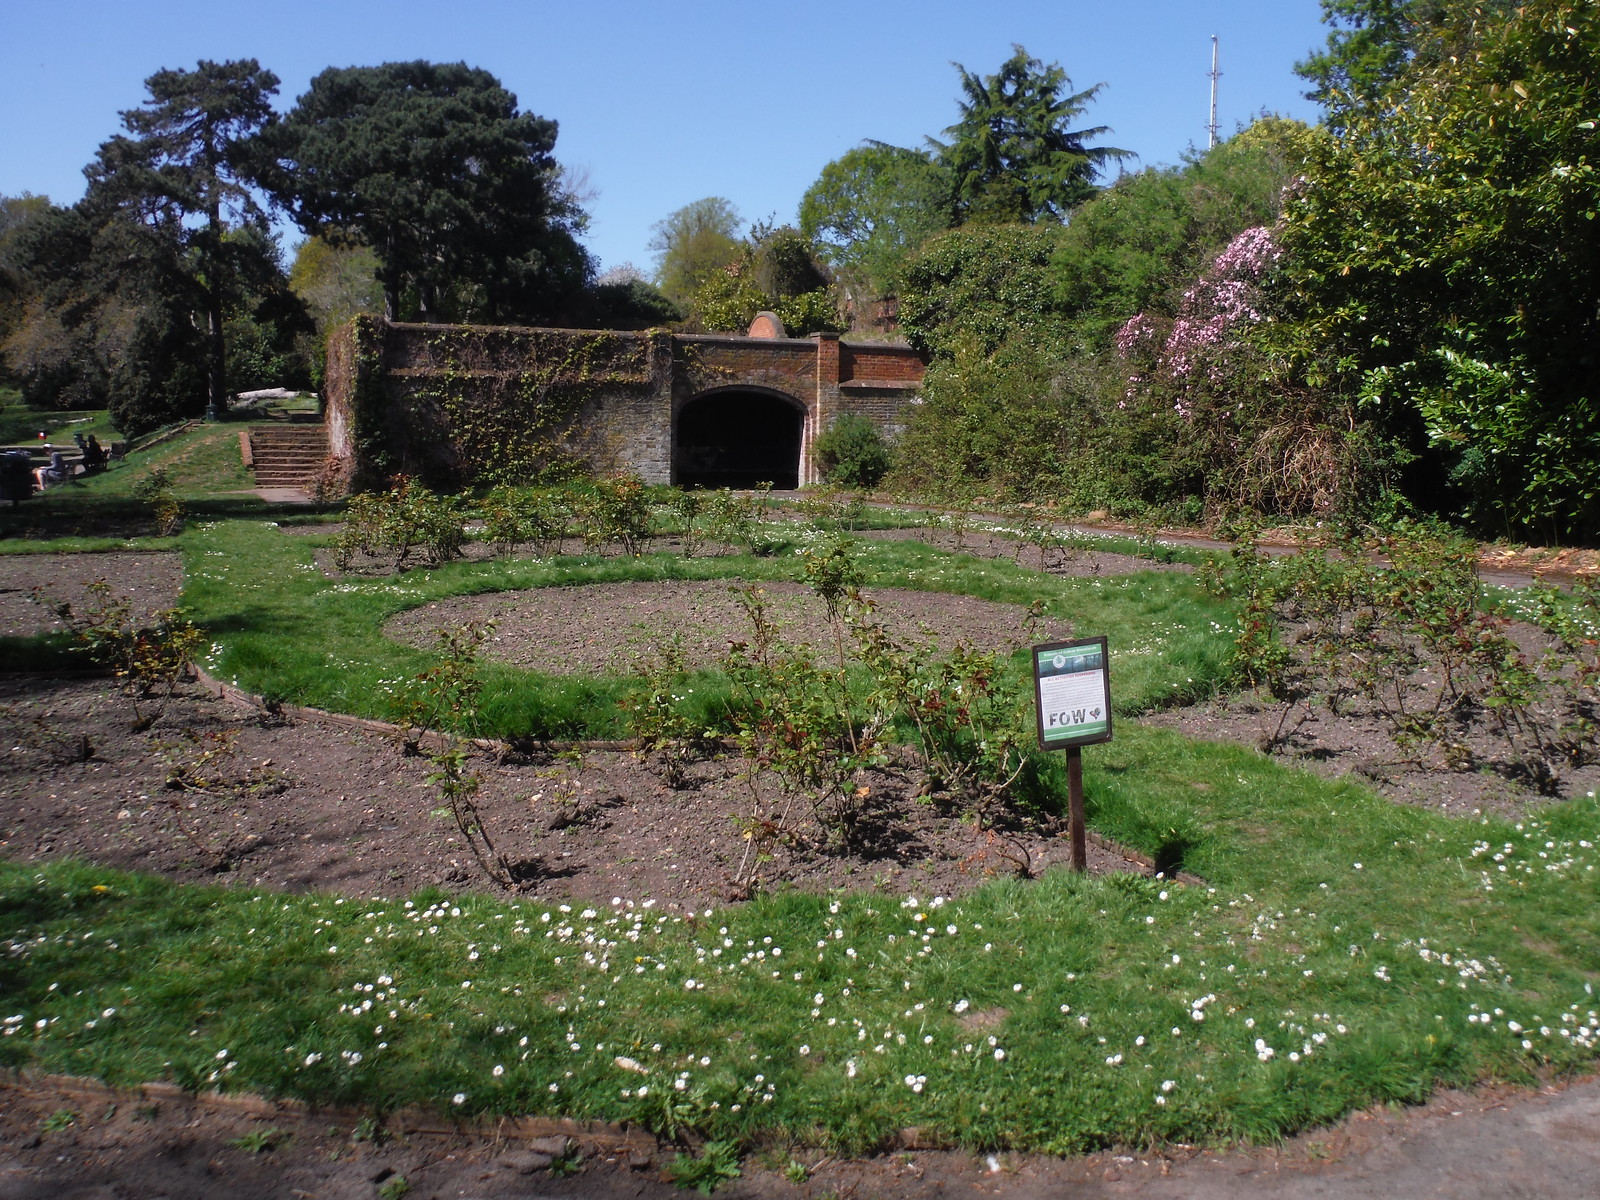 Rose Garden at Site of Jackwood House, Jack Wood SWC Short Walk 44 - Oxleas Wood and Shooters Hill (Falconwood Circular)